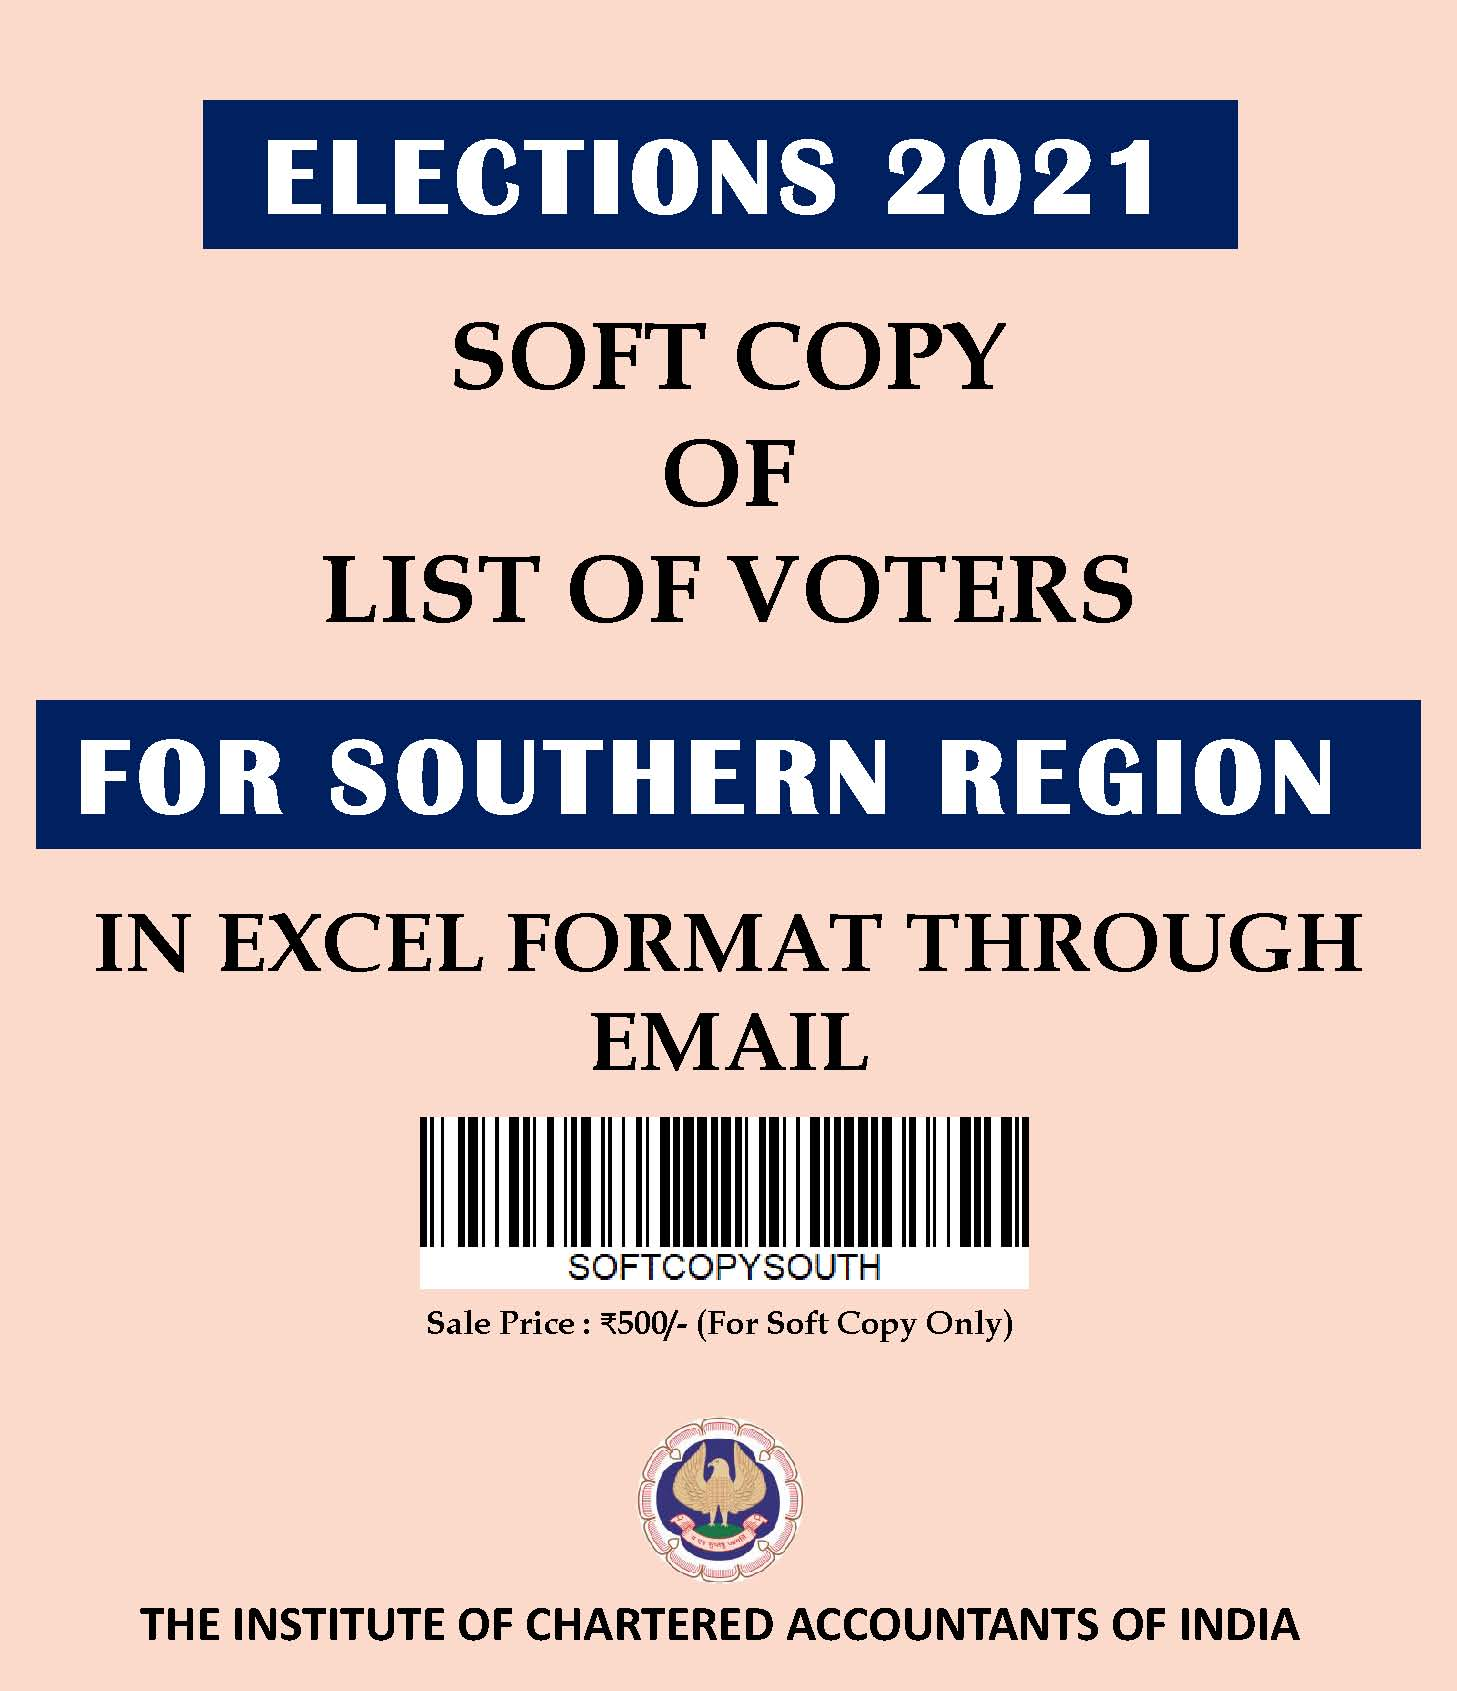 SOFT COPY: List of Voters for Southern Region (Elections 2021) in Excel Format Through E-mail